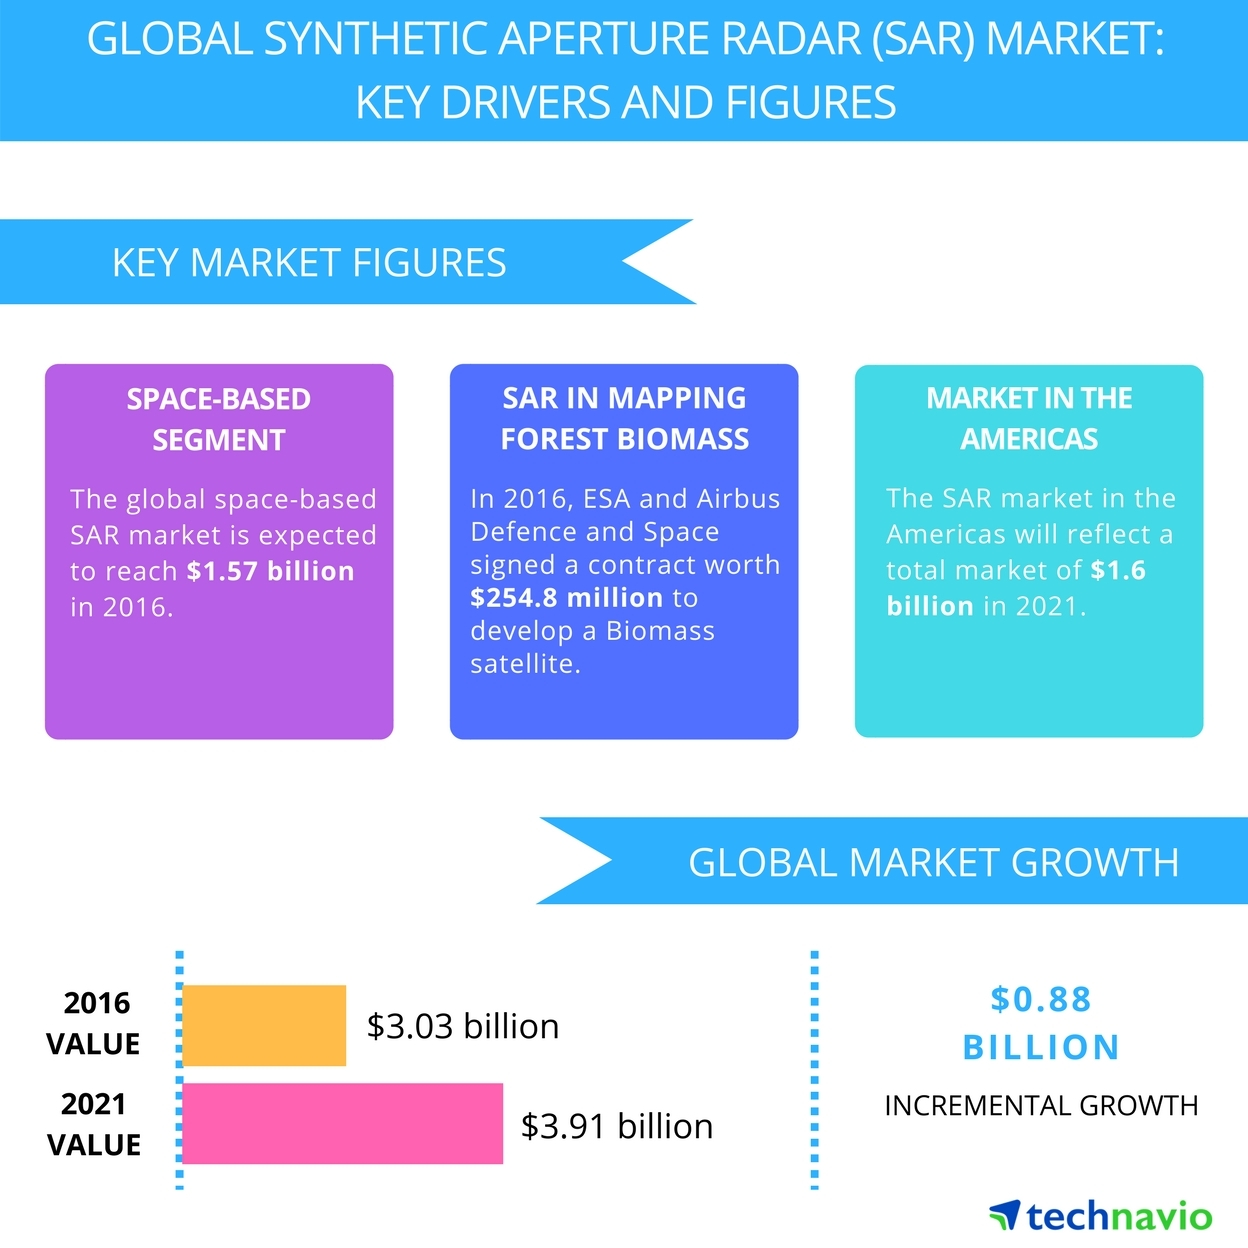 Technavio has published a new report on the global synthetic aperture radar (SAR) market from 2017-2021. (Graphic: Business Wire)